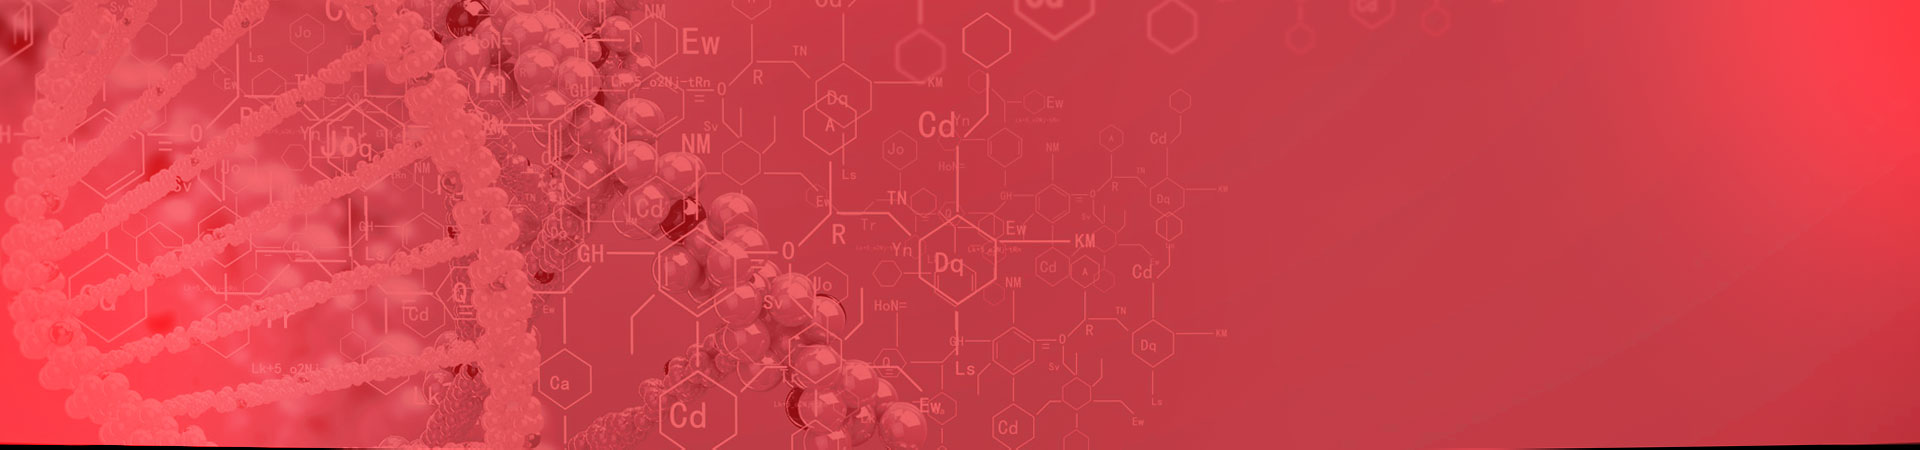 Lateral-Pharma-Red